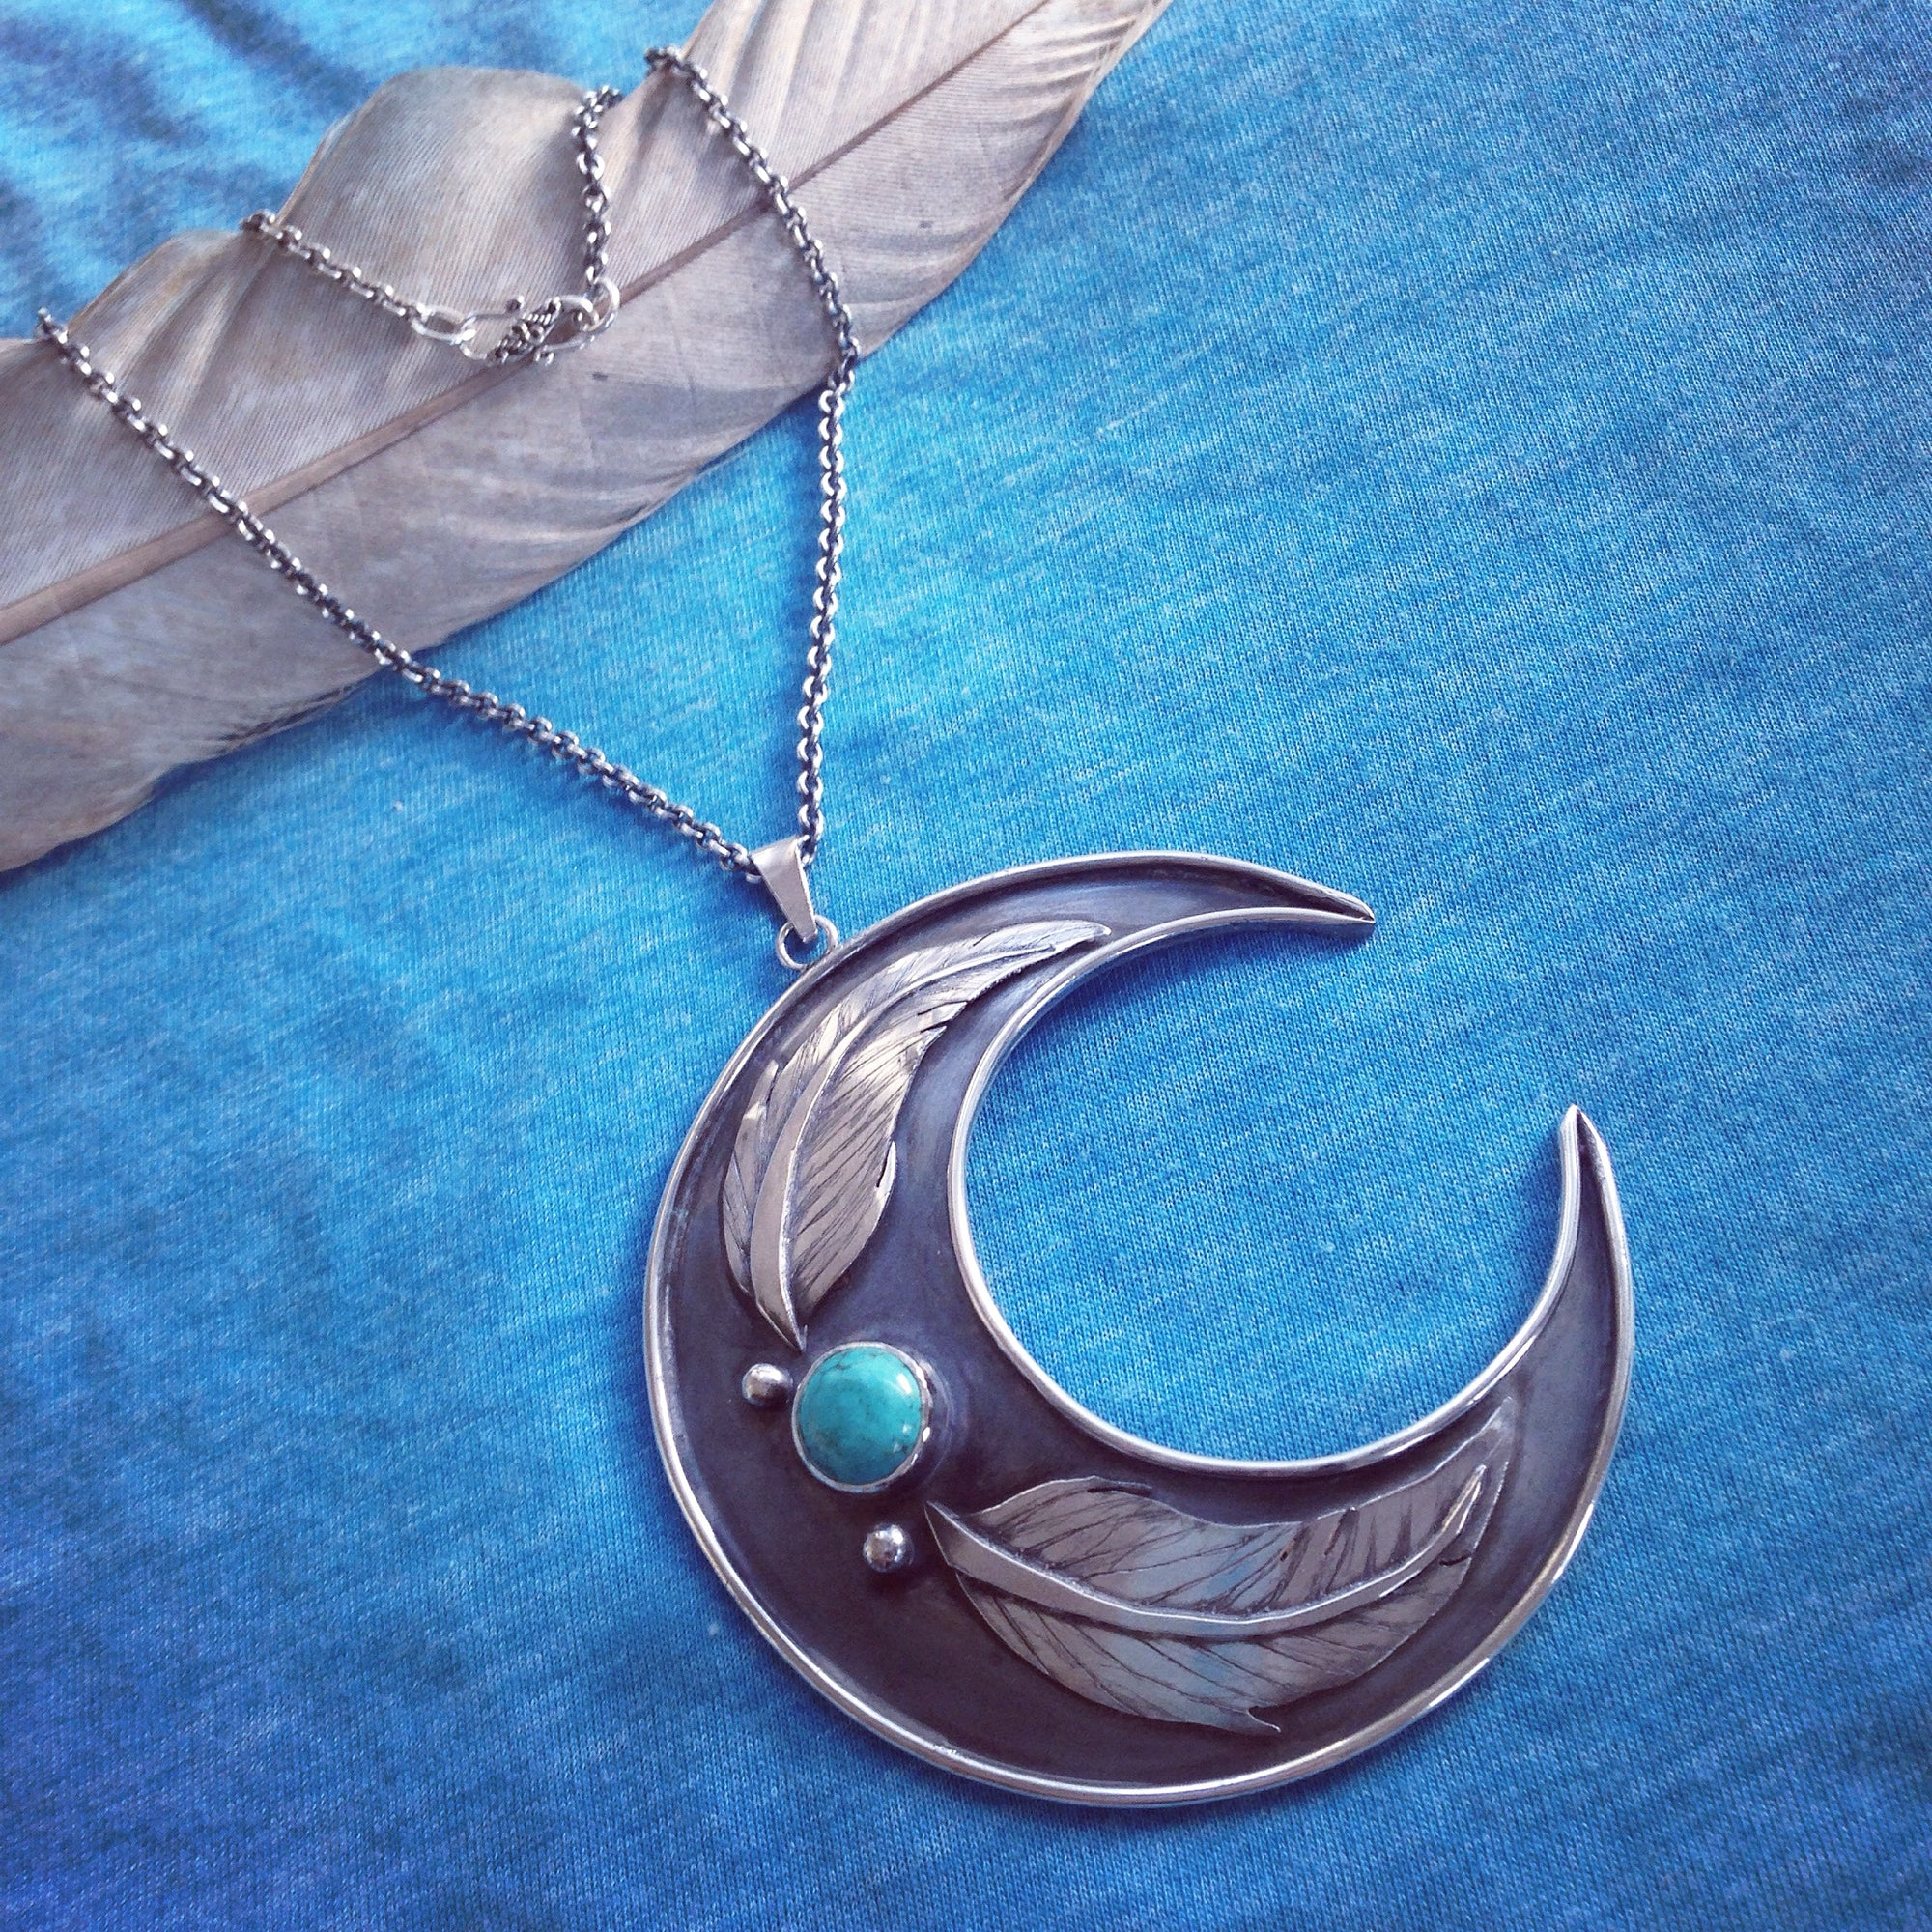 Fallen Feathers Necklace